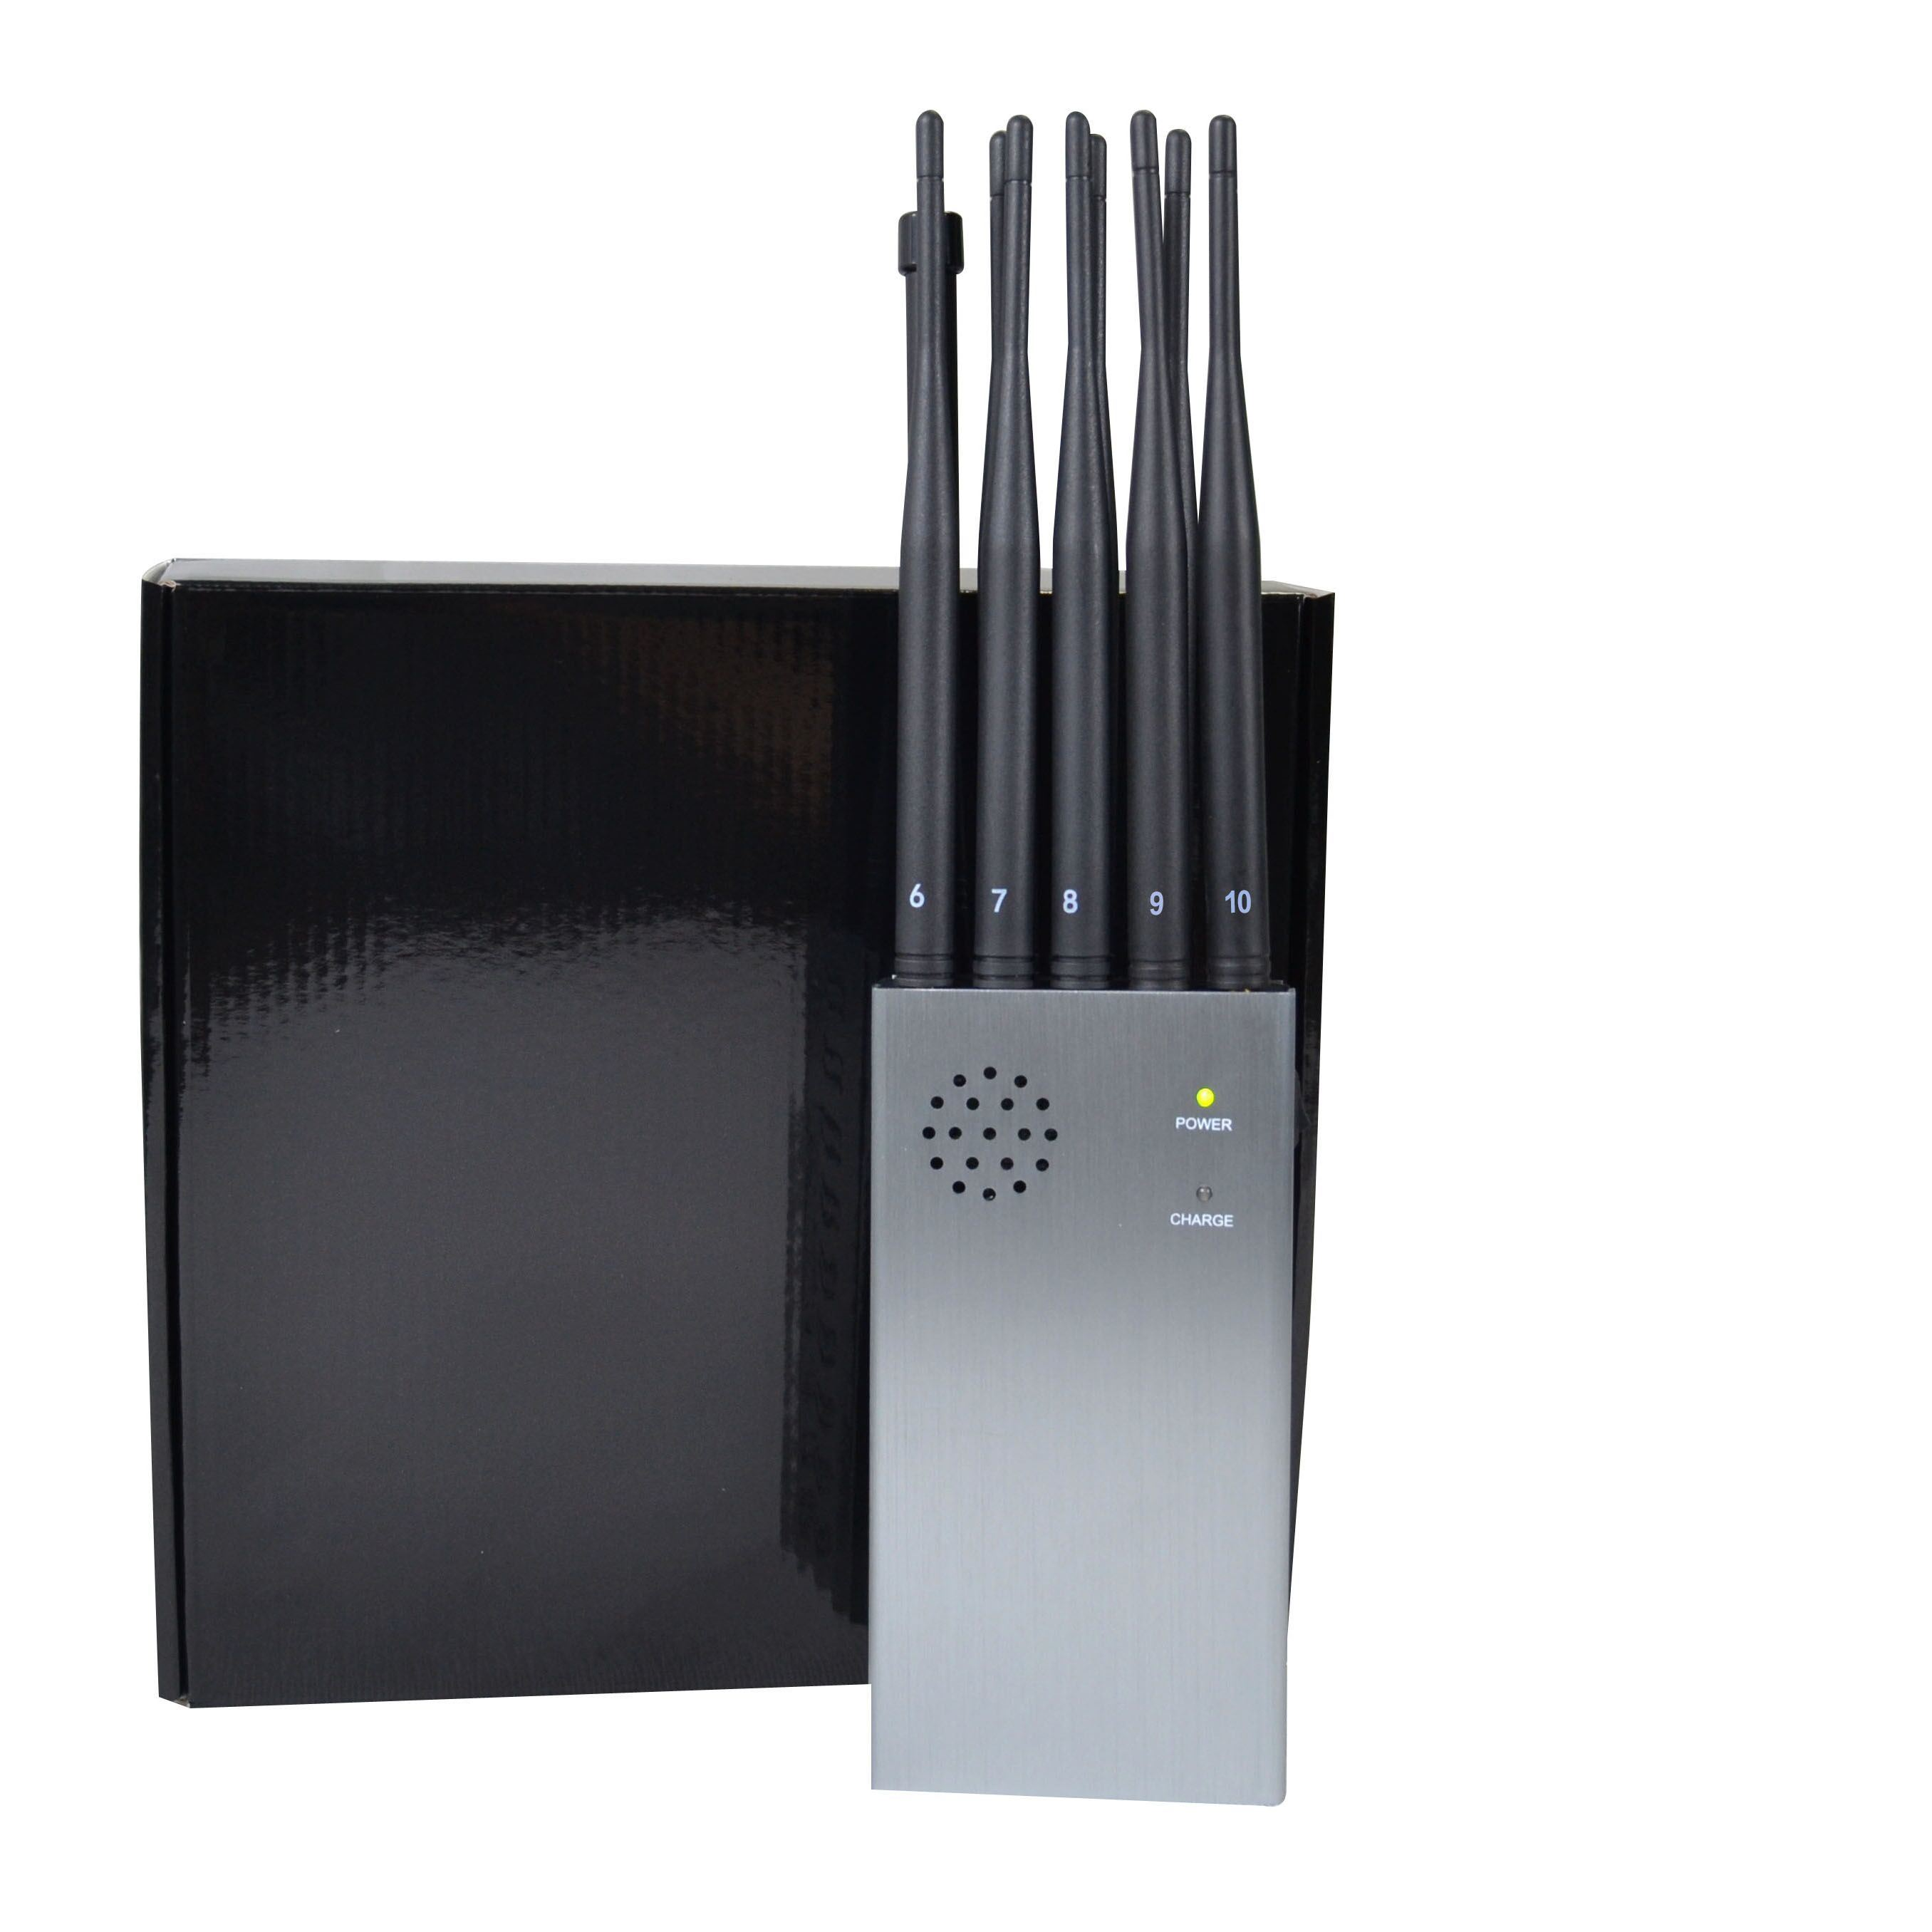 phone jammer fcc zero - China Handled Portable Jammer with 10 Antennas Newest Model Updated Version with 8000mA - China 8000mA Battery Jammer, Large Volume Power Signal Blocker